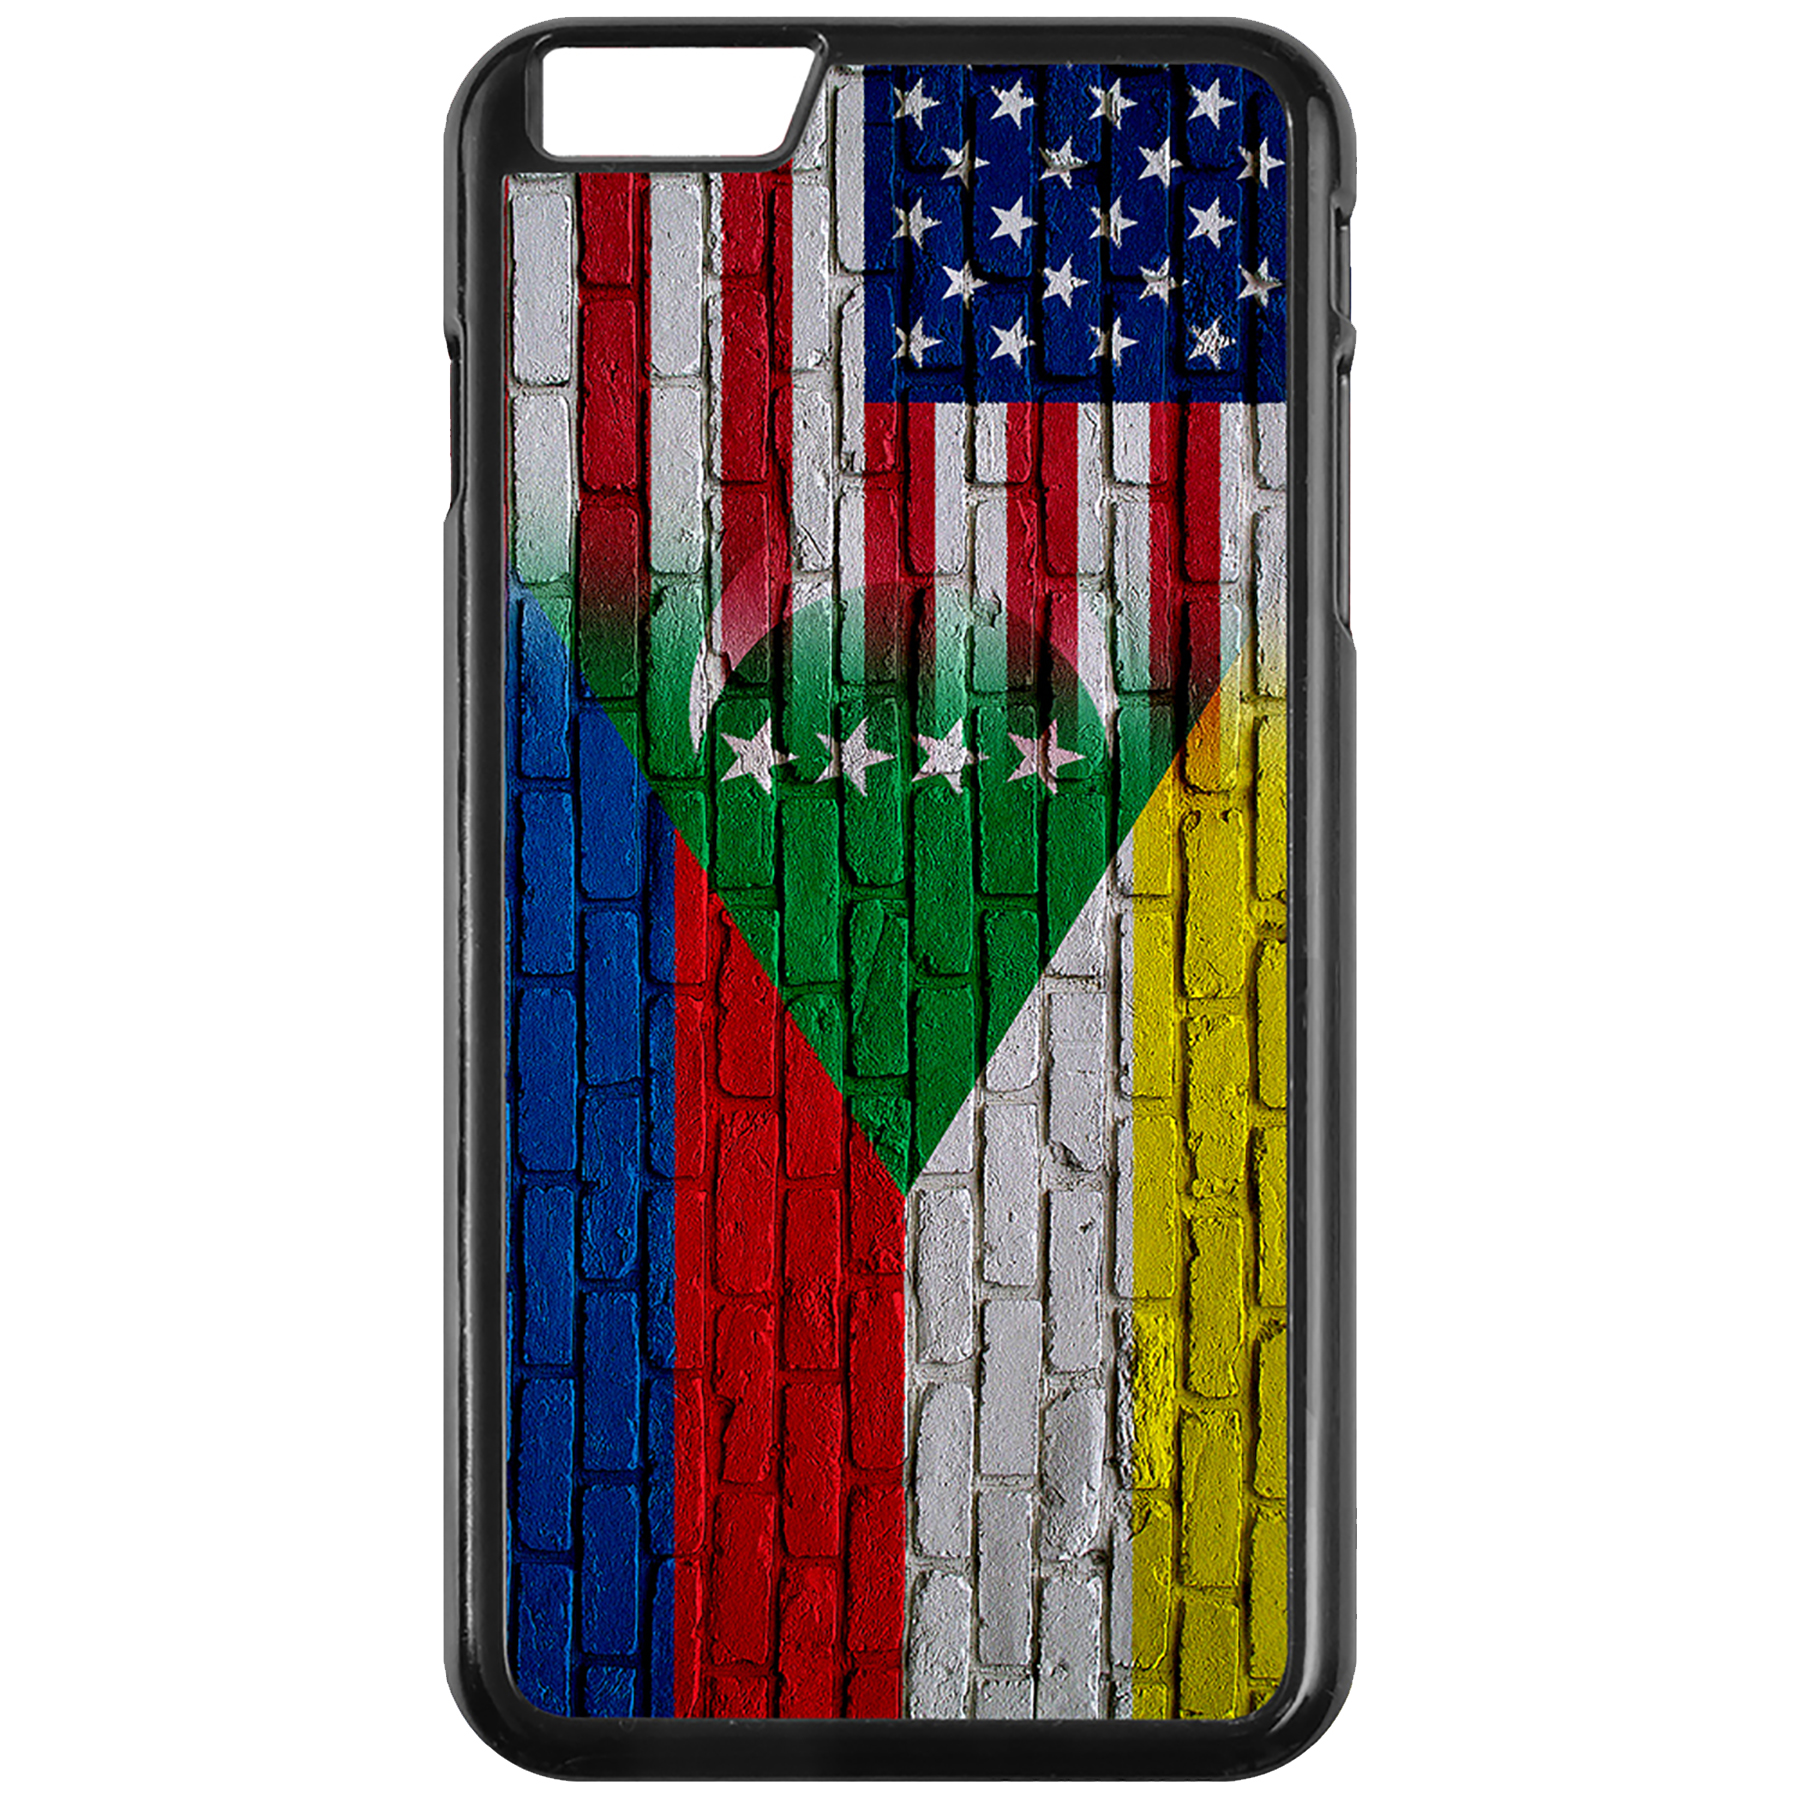 Apple-iPhone-Case-with-Flag-of-Comoros-Comorian-Many-Design-Options thumbnail 66